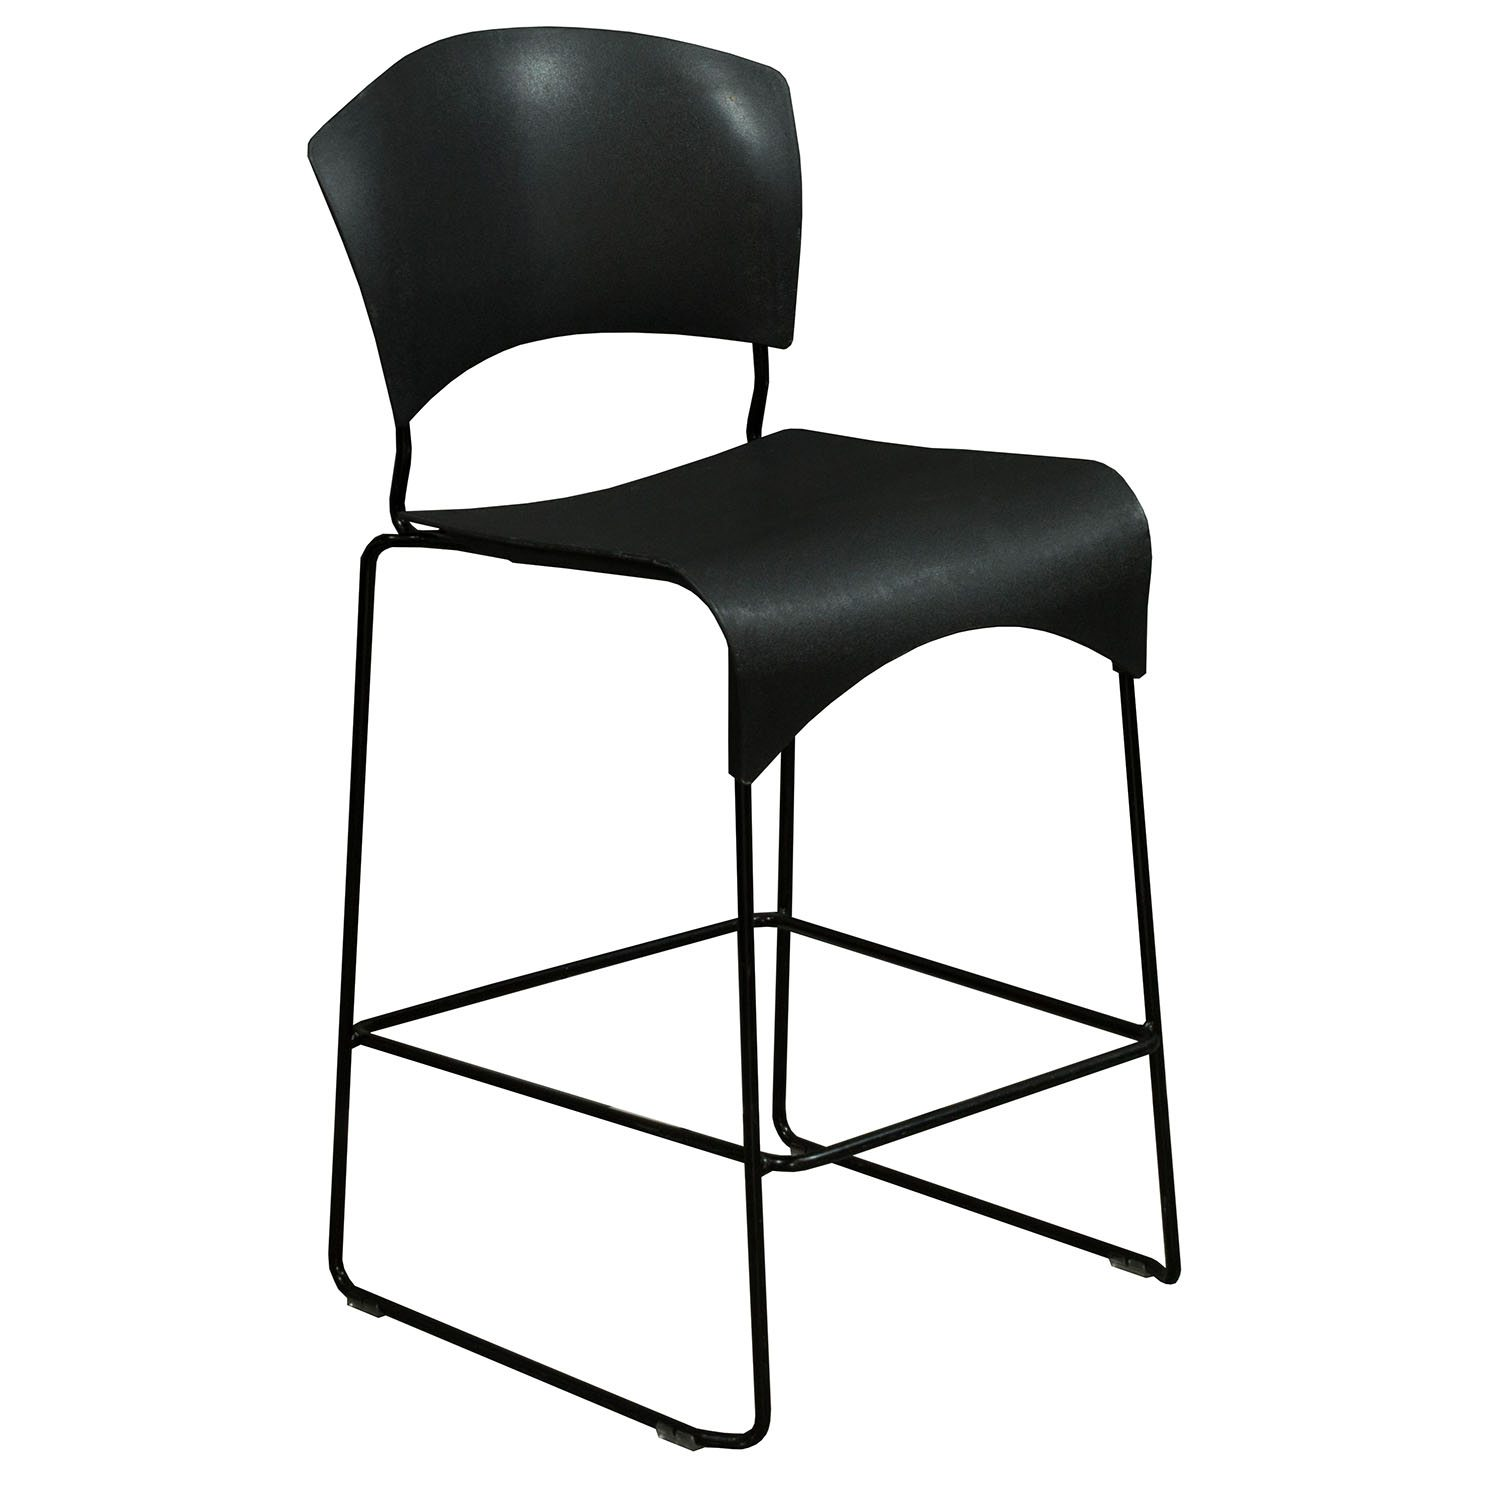 chair stool black revolving manufacturers in delhi fixtures furniture jazz used national